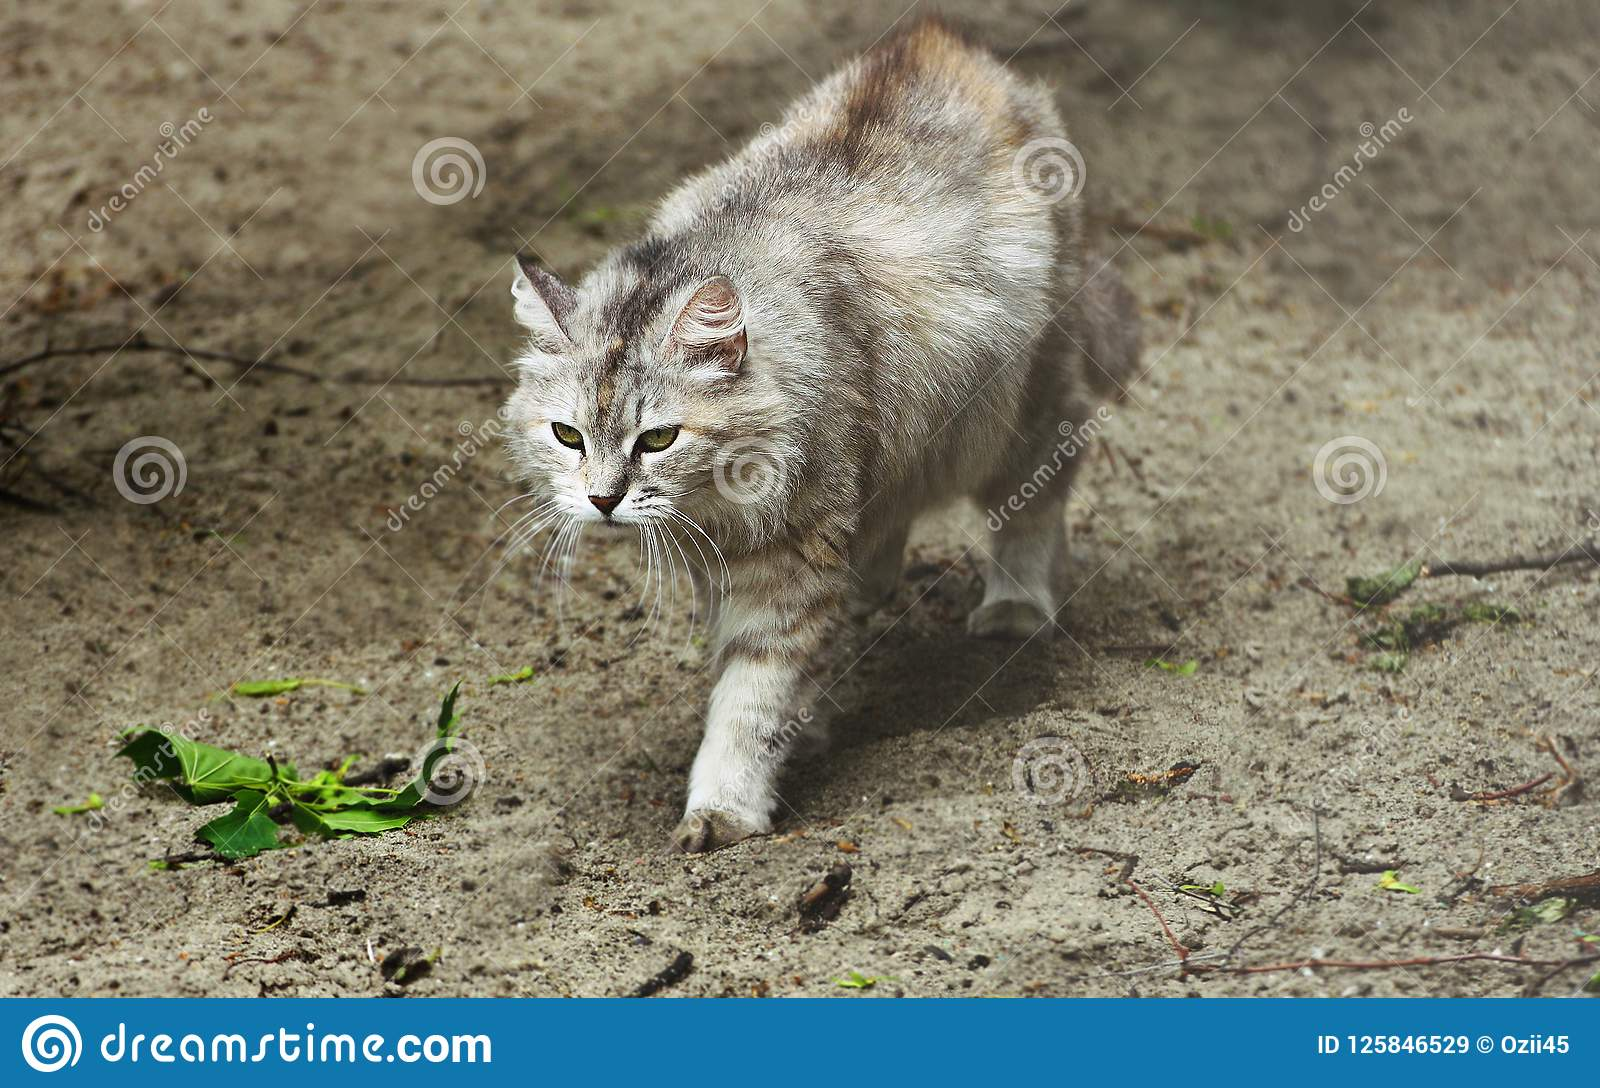 gray cat is on the gray sand stock image image of cats breeds